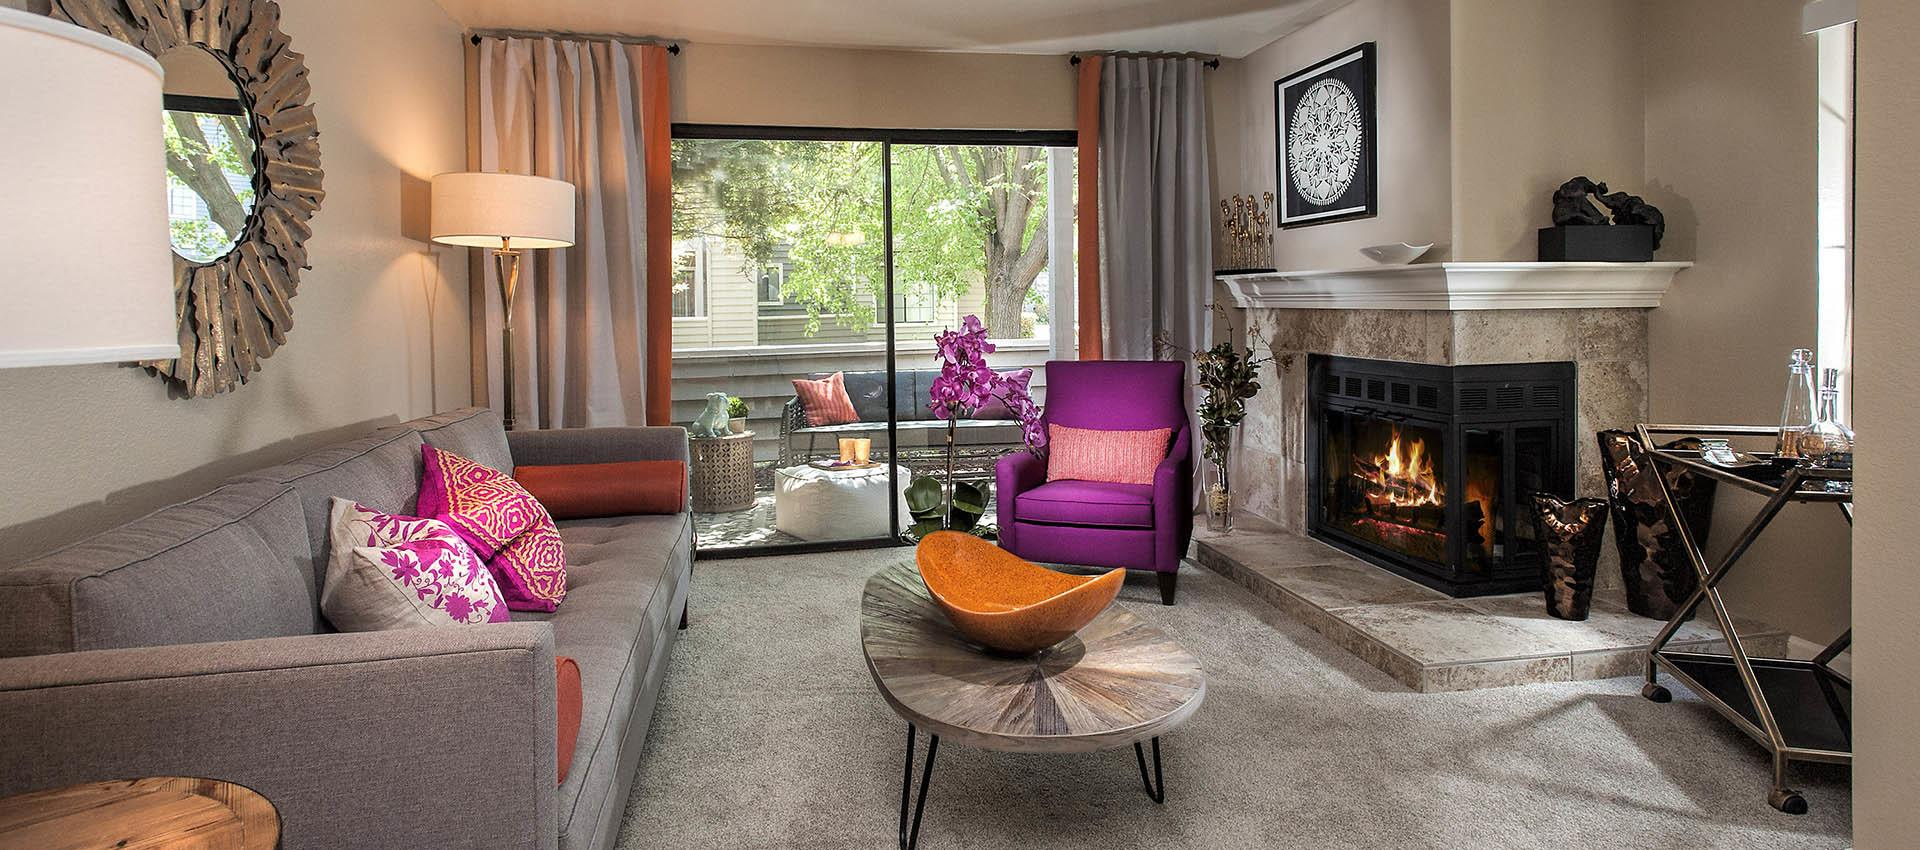 Living Room With Modern Decor And Fire Place at Hidden Lake Condominium Rentals in Sacramento, CA